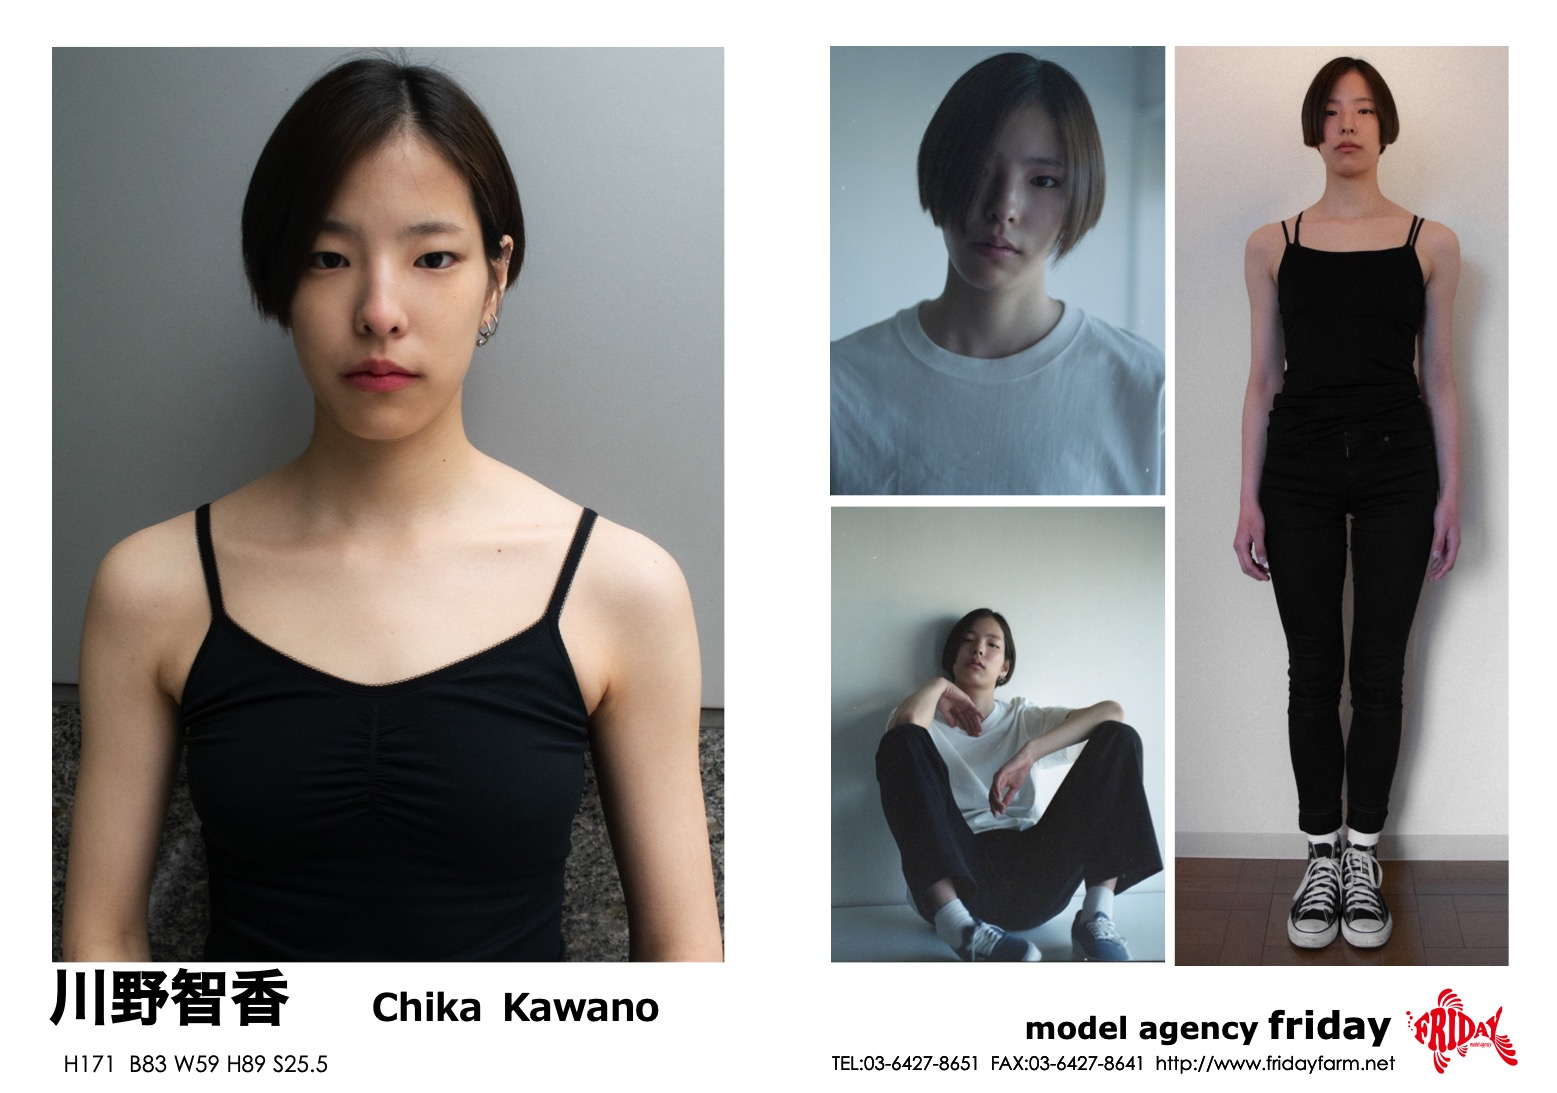 川野 智香 - Chika Kawano | model agency friday